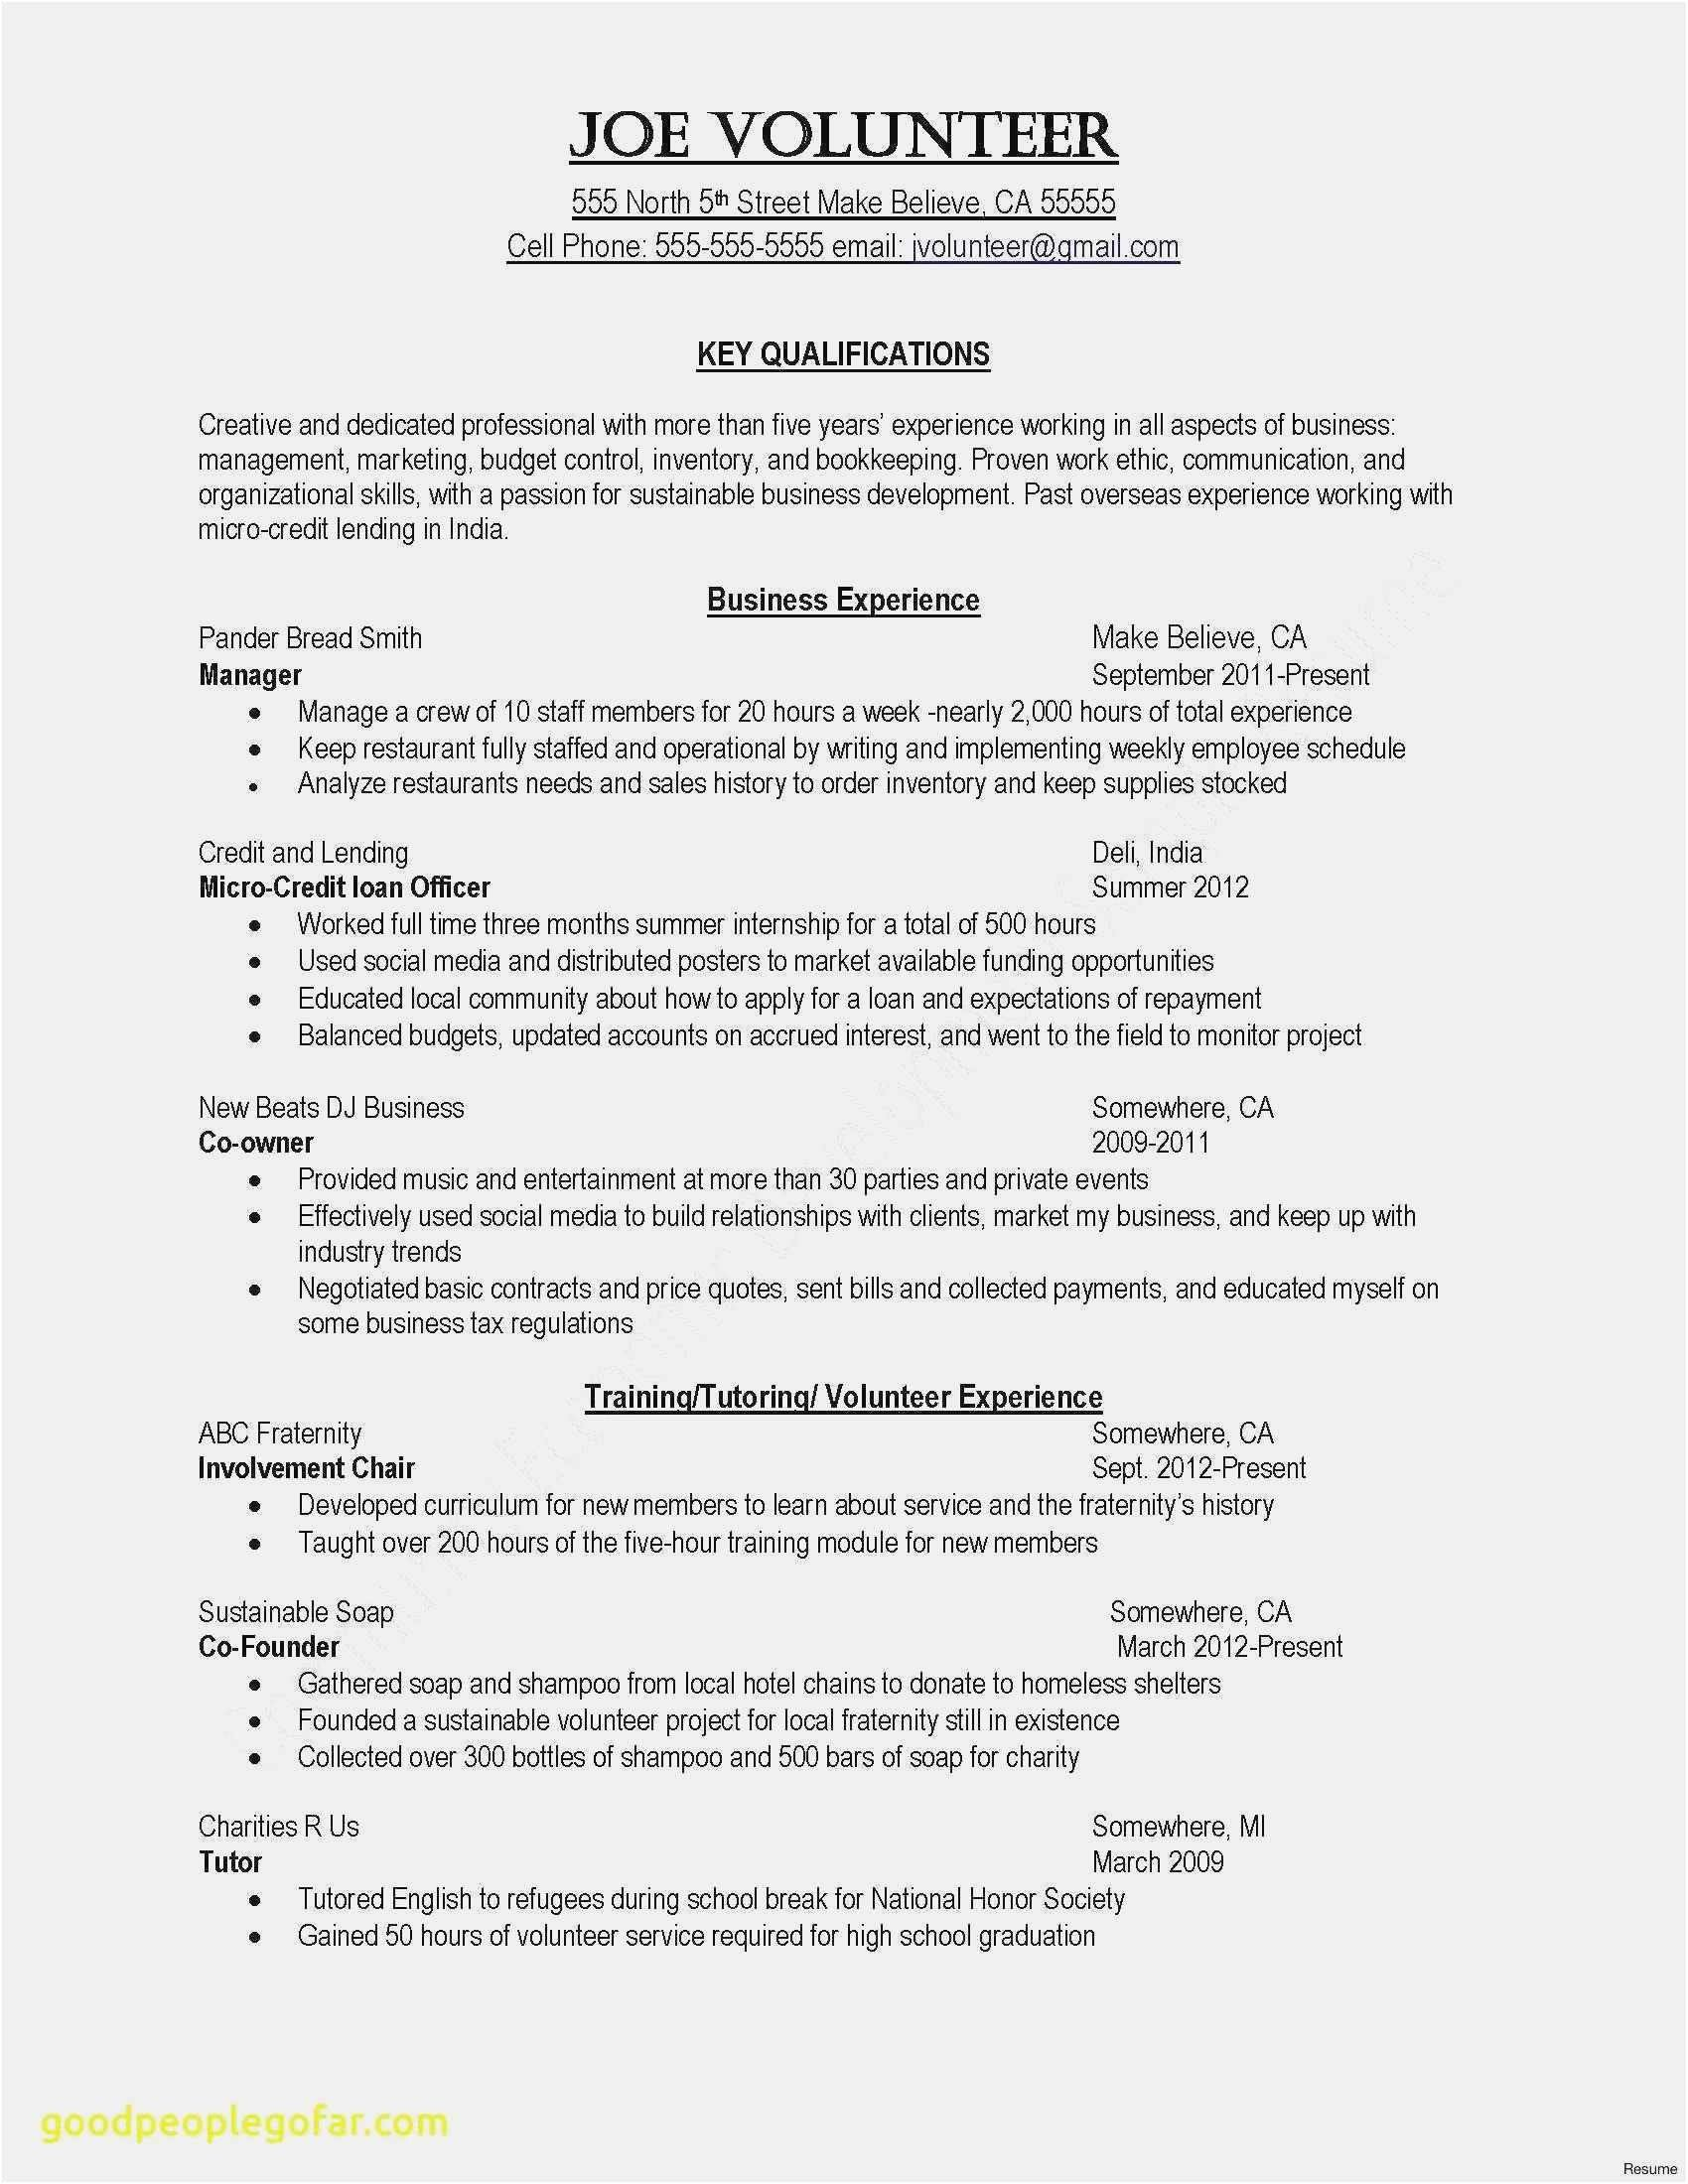 H1b Premium Processing Resume 2019 Free 57 Sponsorship Template Download Project Manager Resume Resume Writing Services Cover Letter For Resume